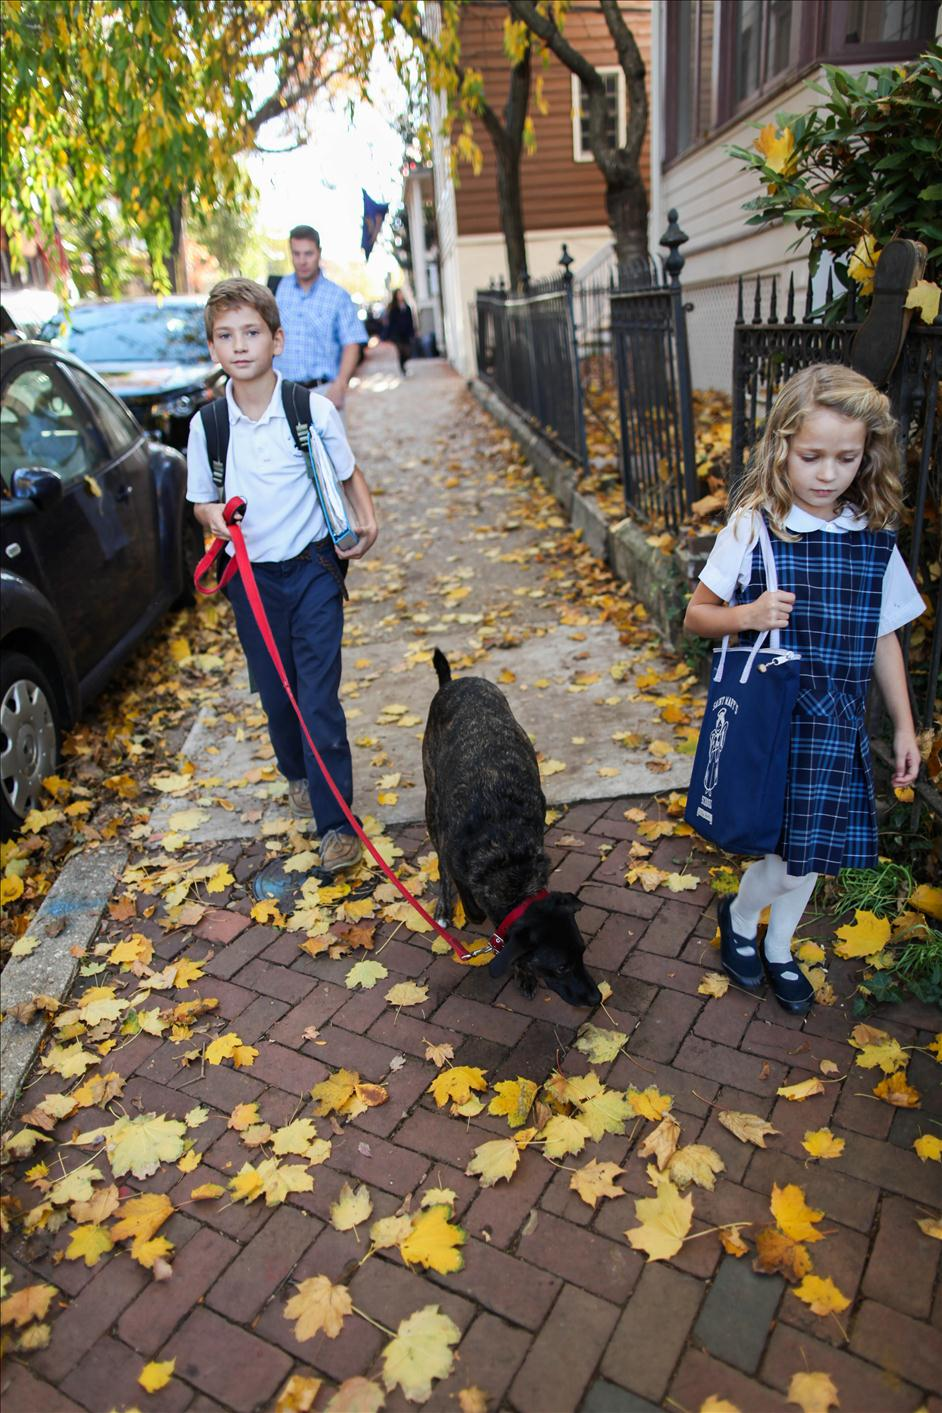 Children walking home from school with dog